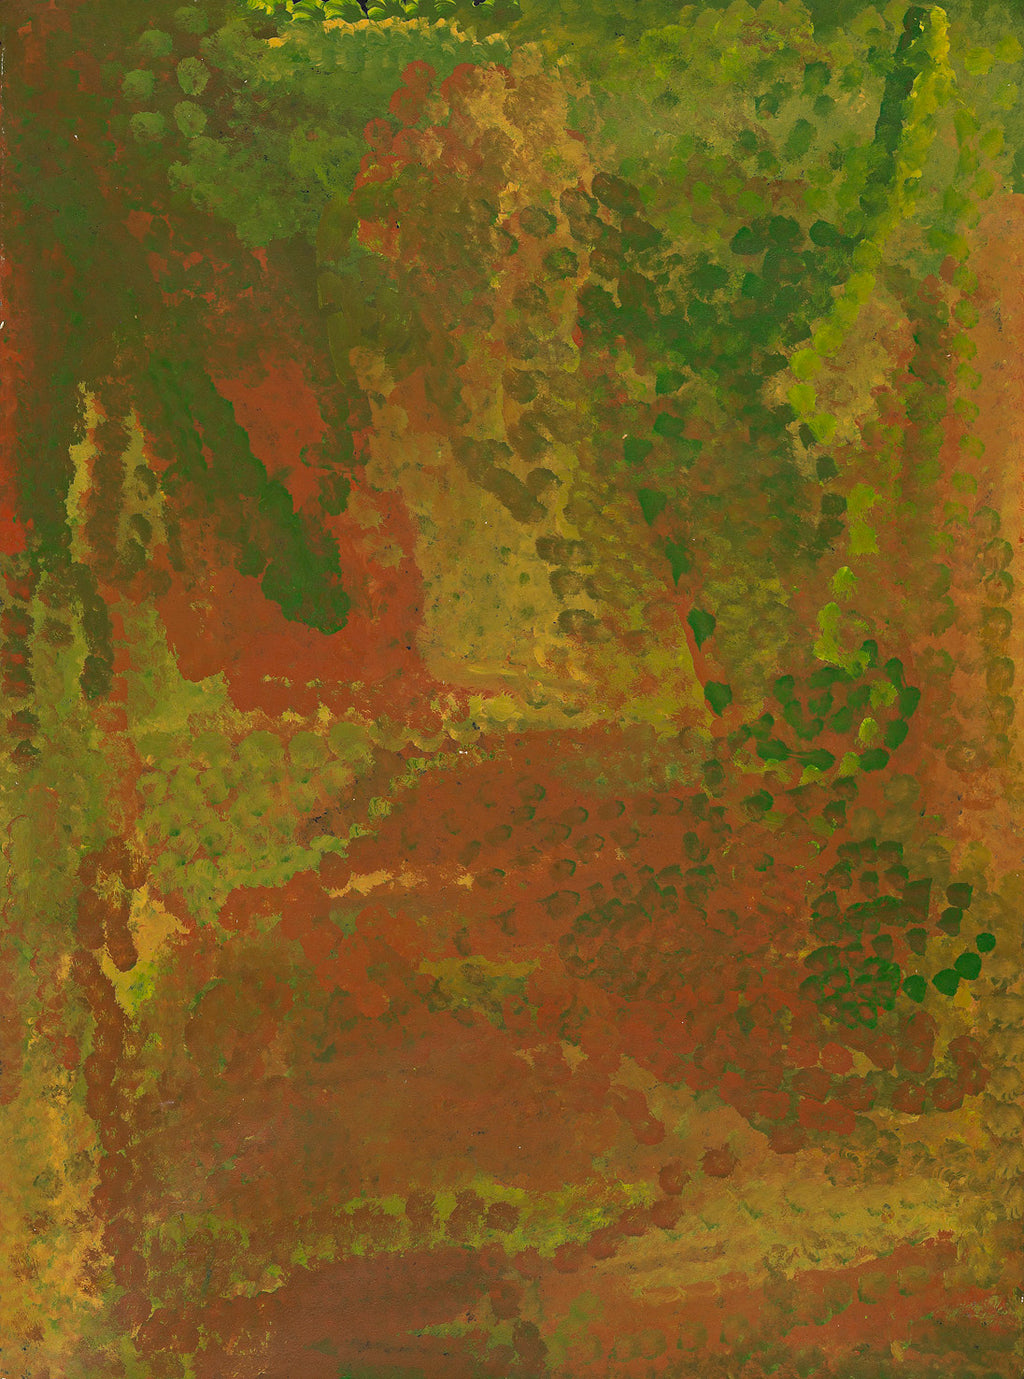 Emily Kame Kngwarreye, Painting 93C033, 1993, 90x120cm - Delmore Gallery